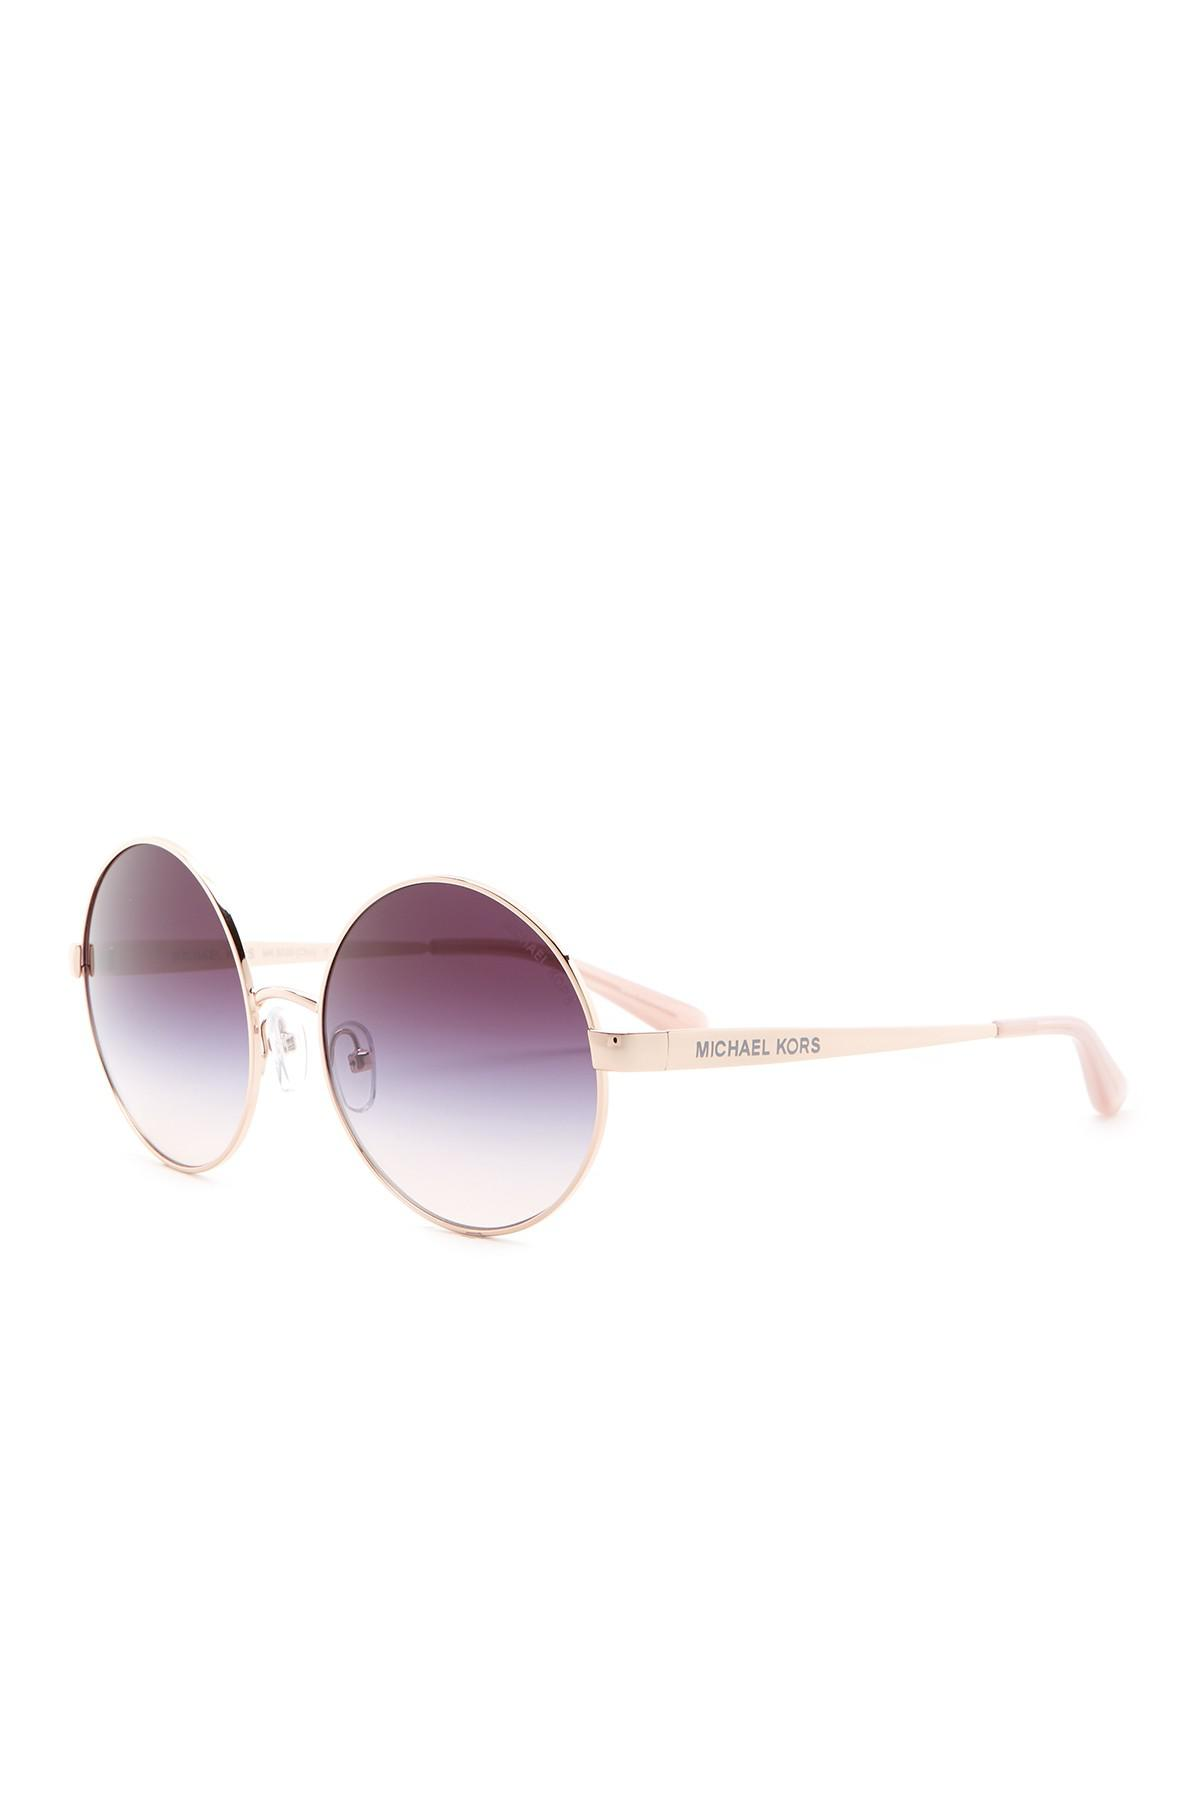 748ef398fc Michael Kors Cho 56mm Round Sunglasses in Purple - Lyst